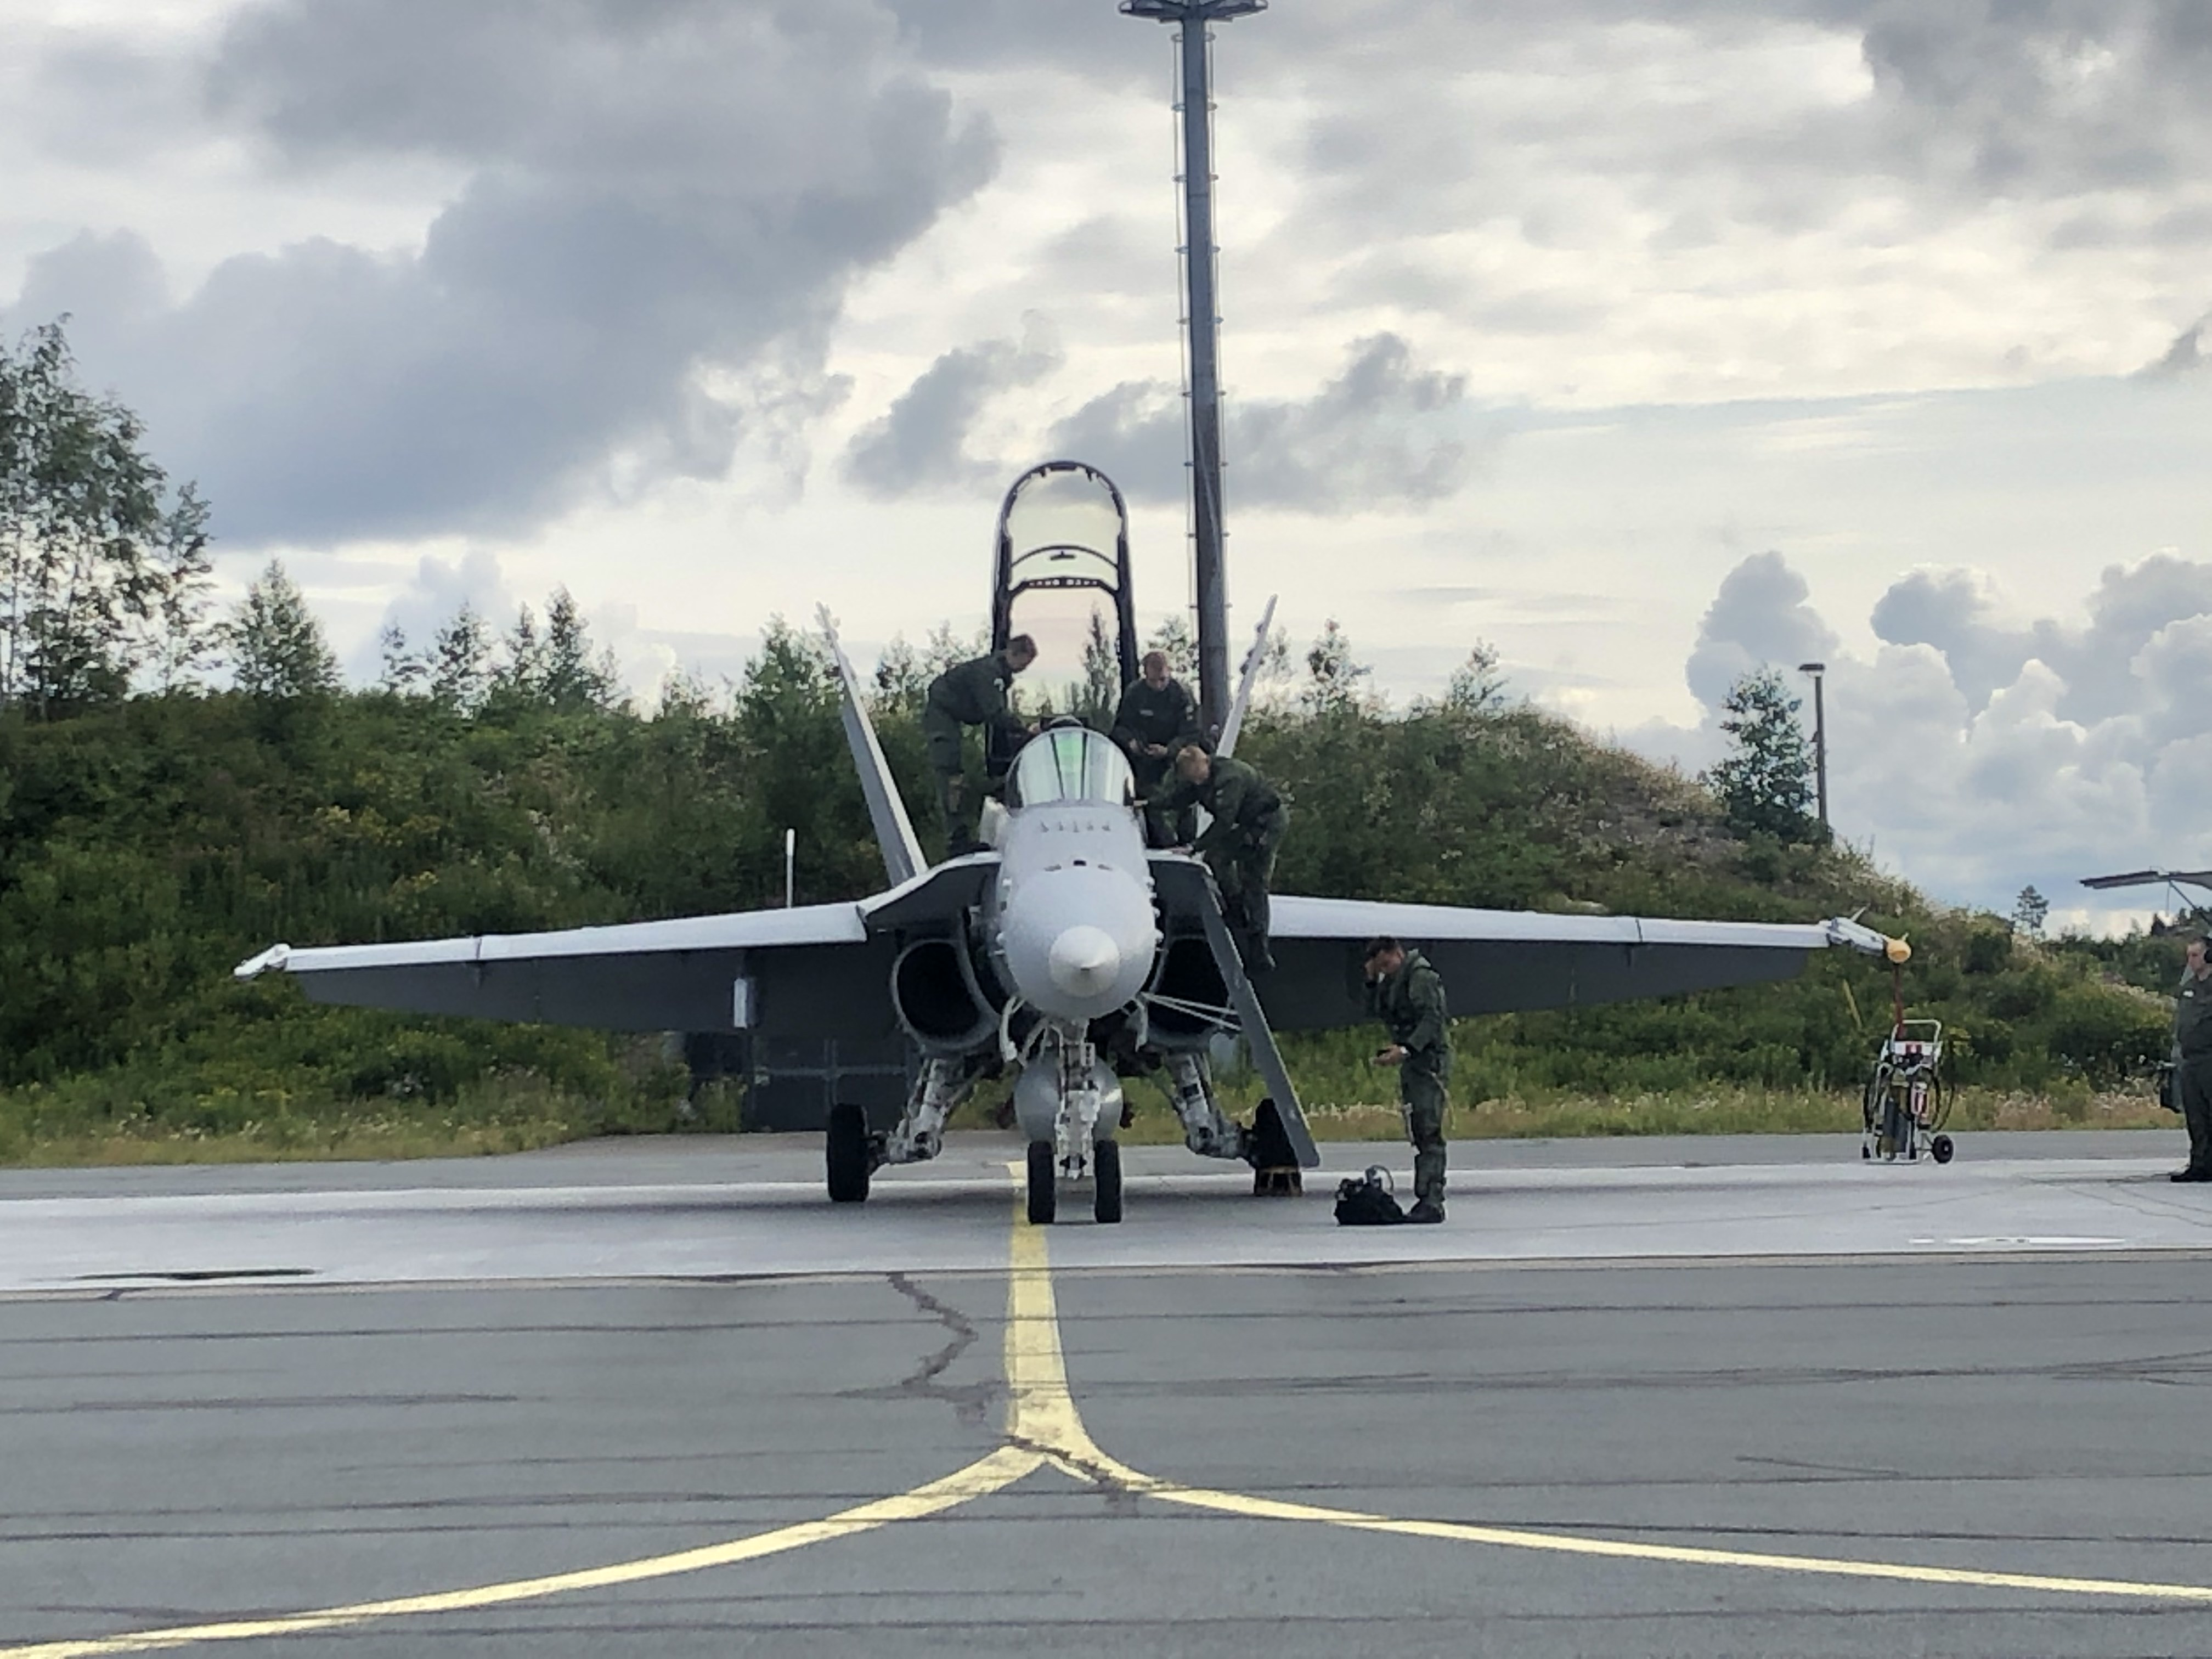 U.S. Air Force Chief Gen. Dave Goldfein prepares for a flight in a Finnish Air Force F/A-18D from Kuopio Air Base on July 15. (Valerie Insinna/Staff)